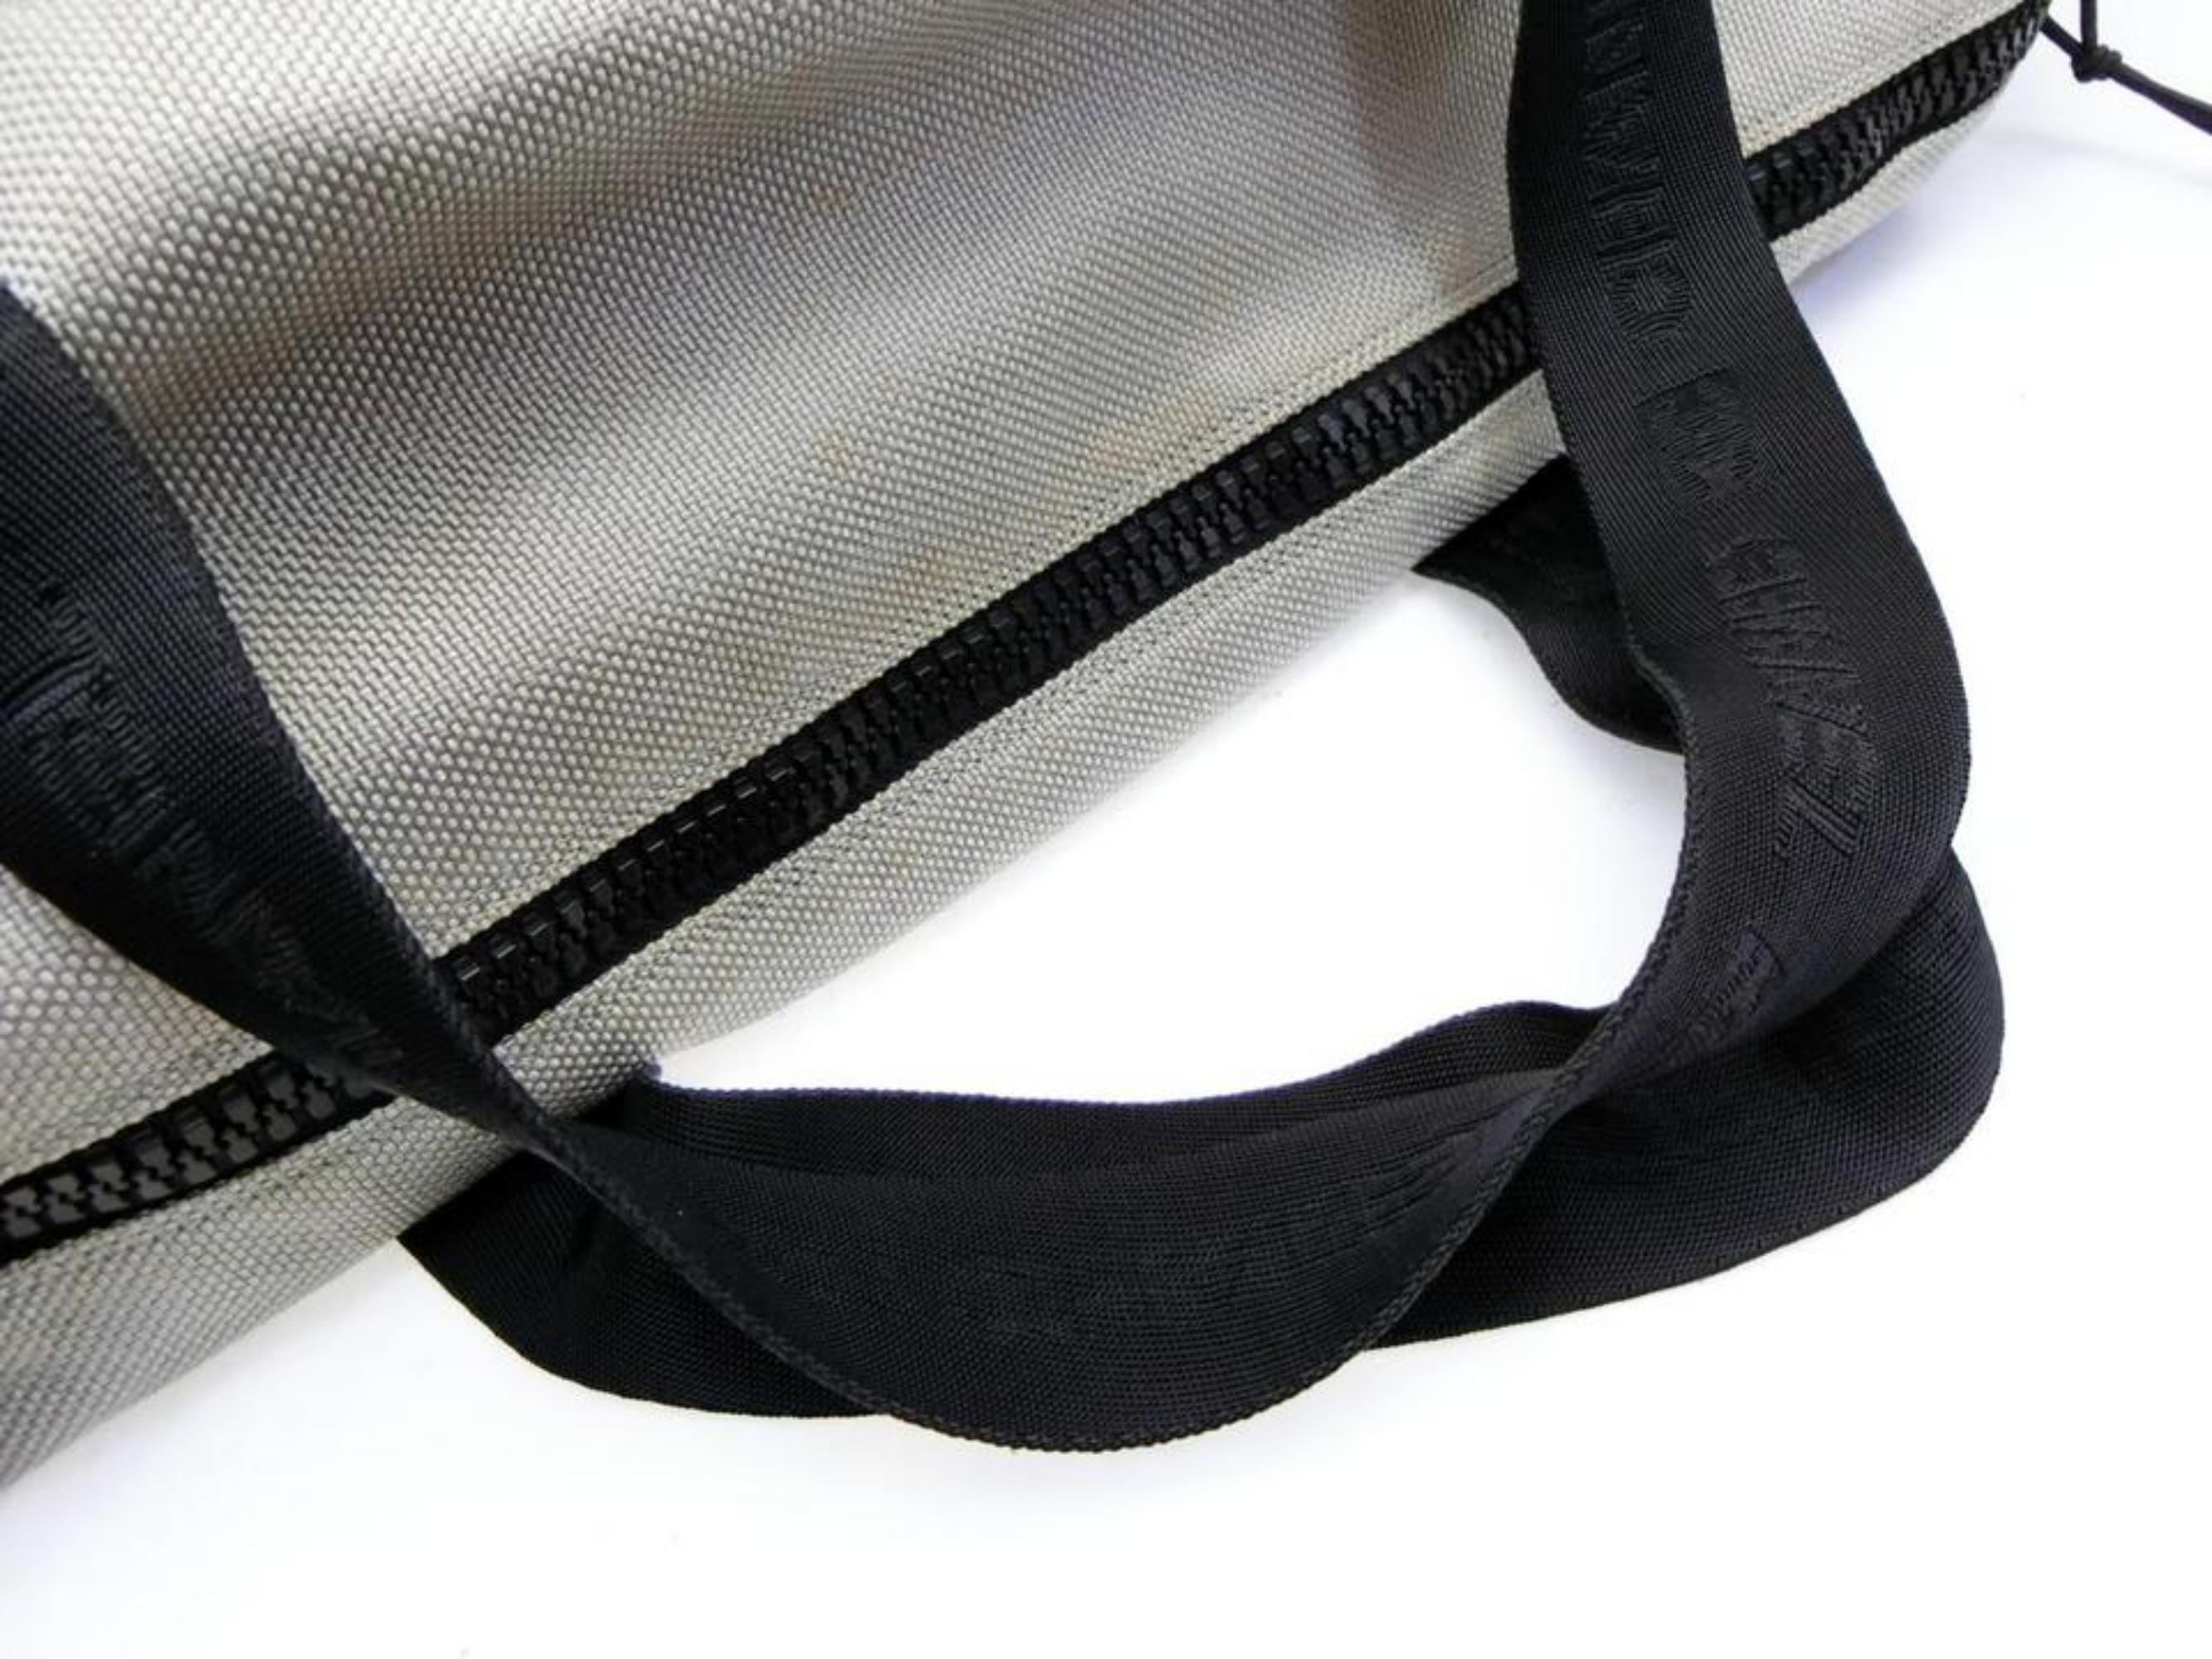 2ad23ea9d72 Chanel Xl Mesh Sports Cc Logo Duffle 230183 Grey Coated Canvas  Weekend Travel For Sale at 1stdibs